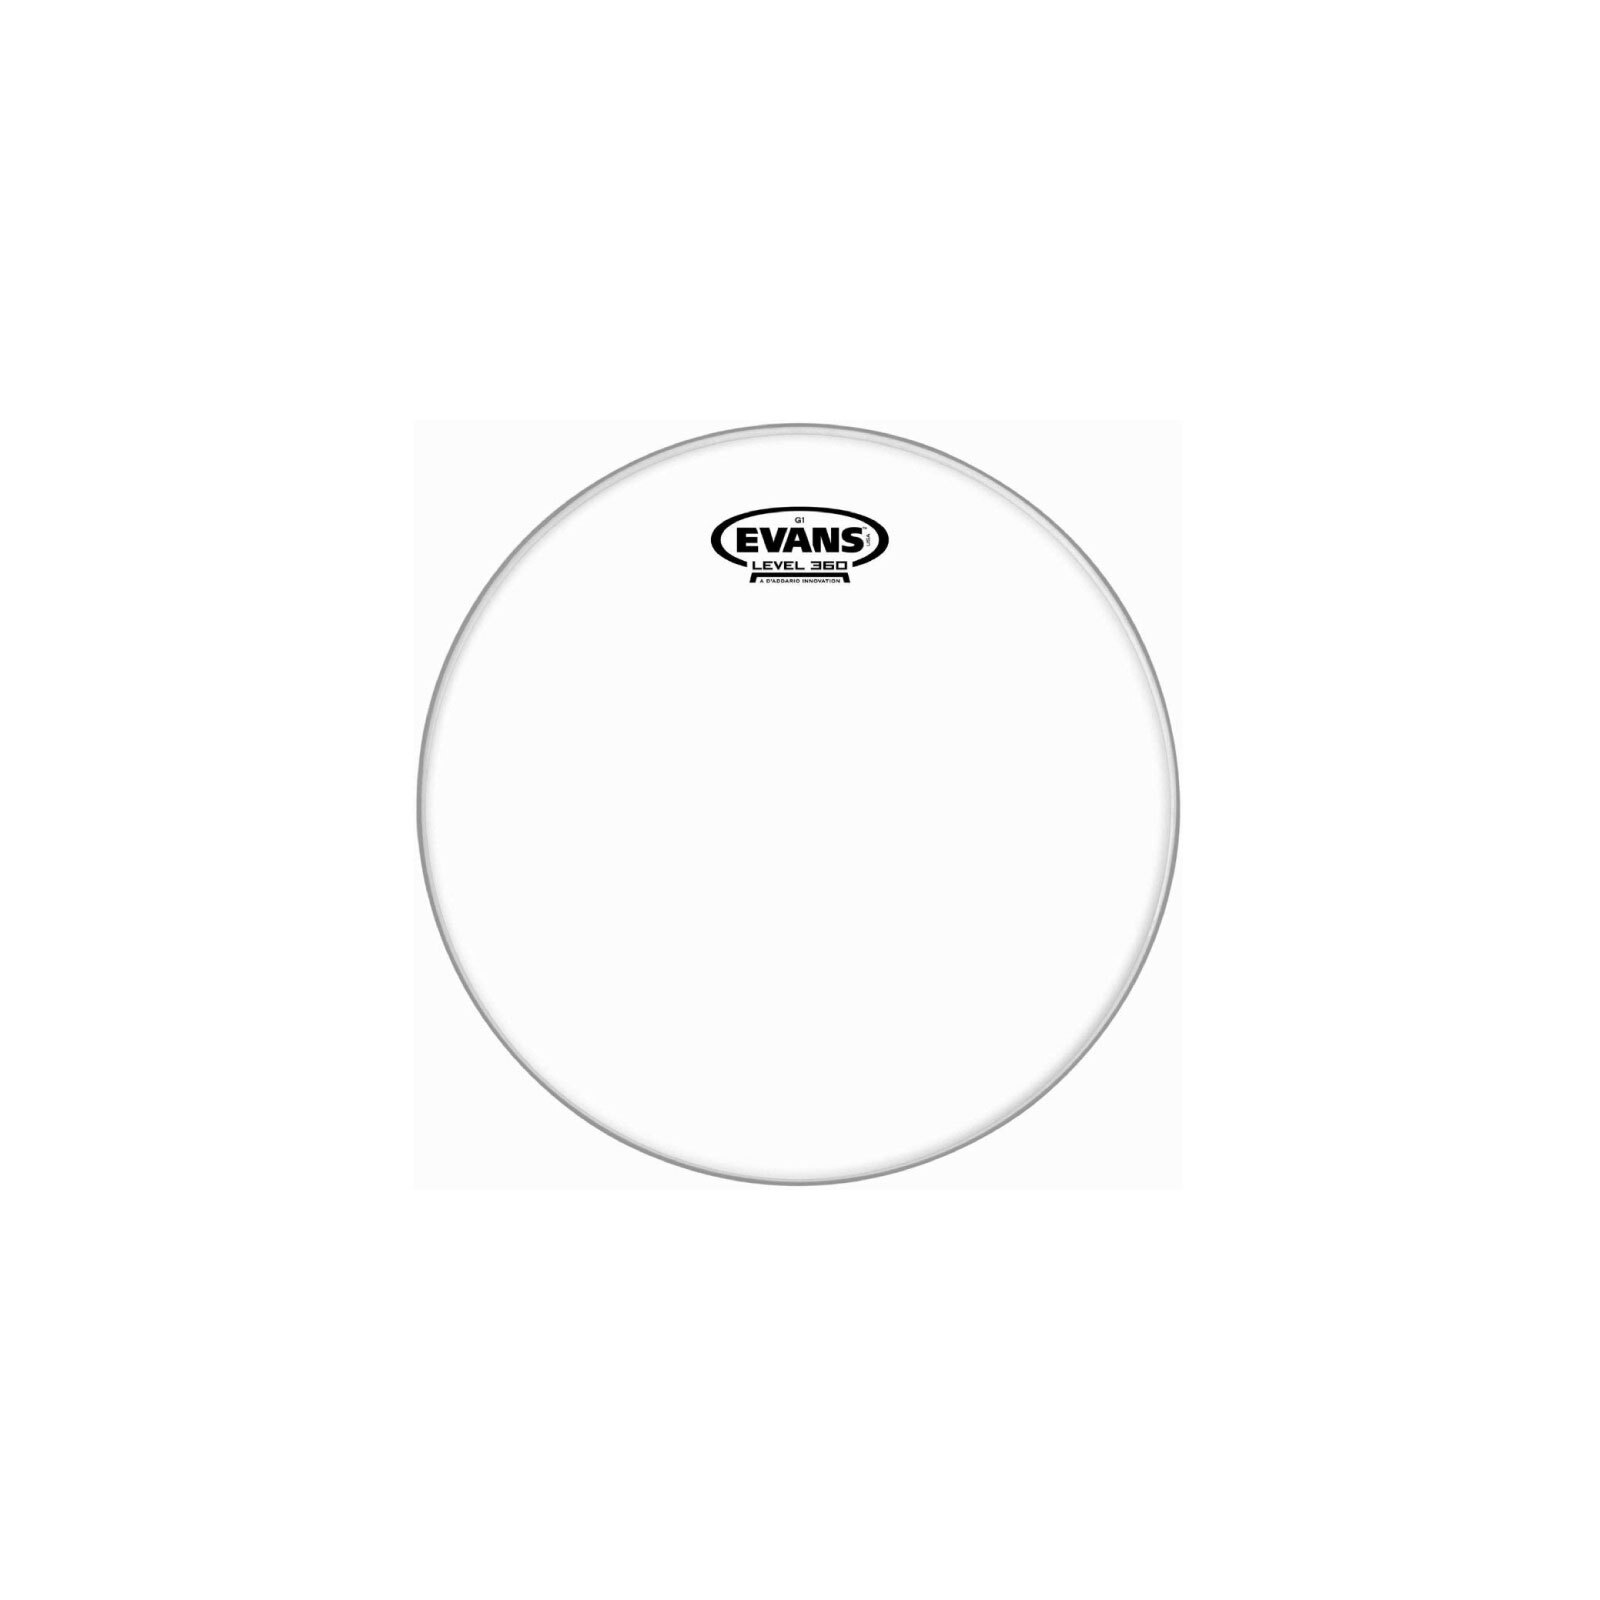 "EVANS 10"" G1 CLEAR DRUM HEAD"